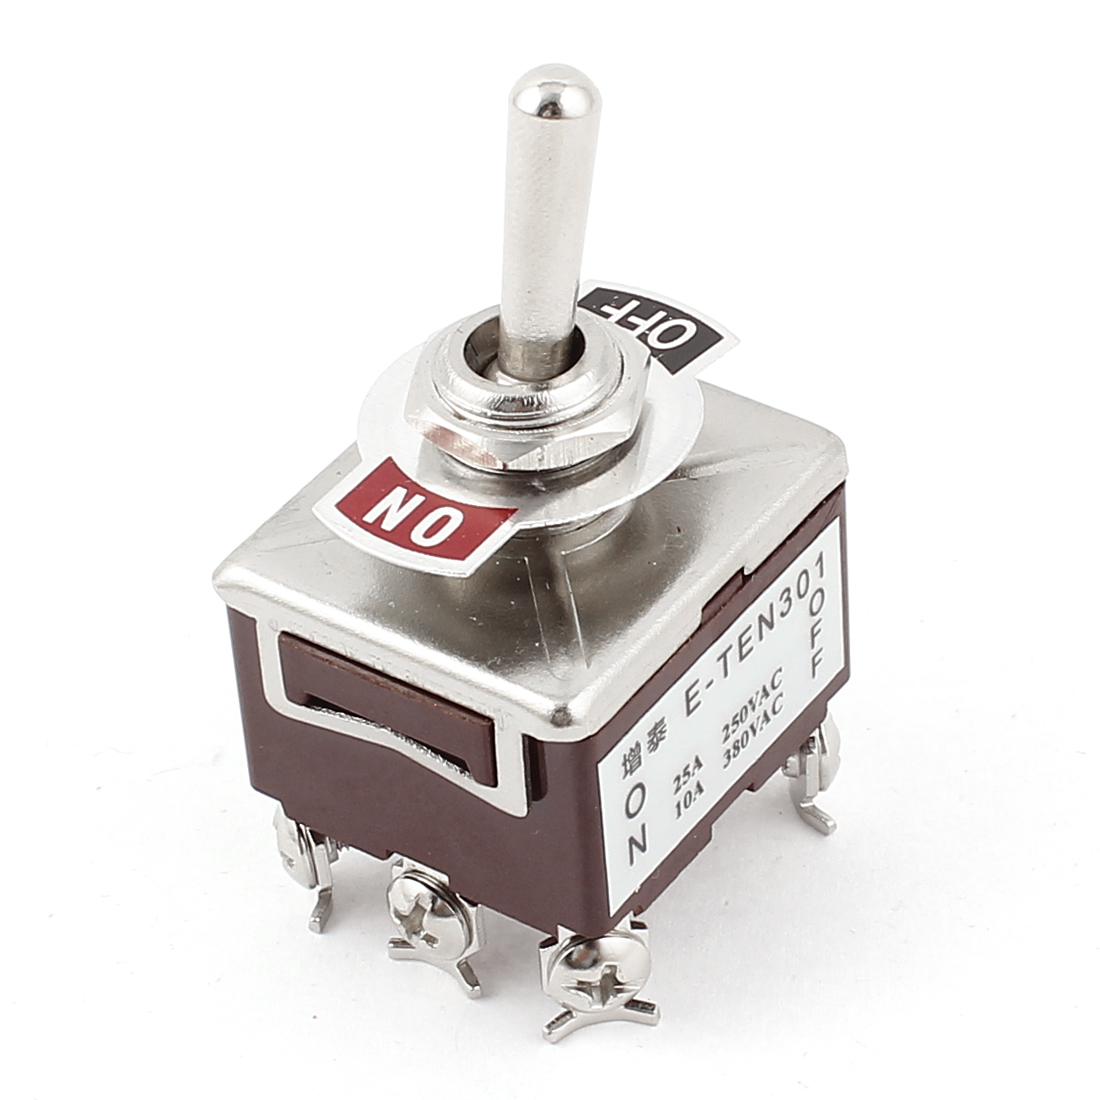 AC 250V/25A 380V/10A 6 Pins 2 Position ON/OFF DPDT Toggle Switch